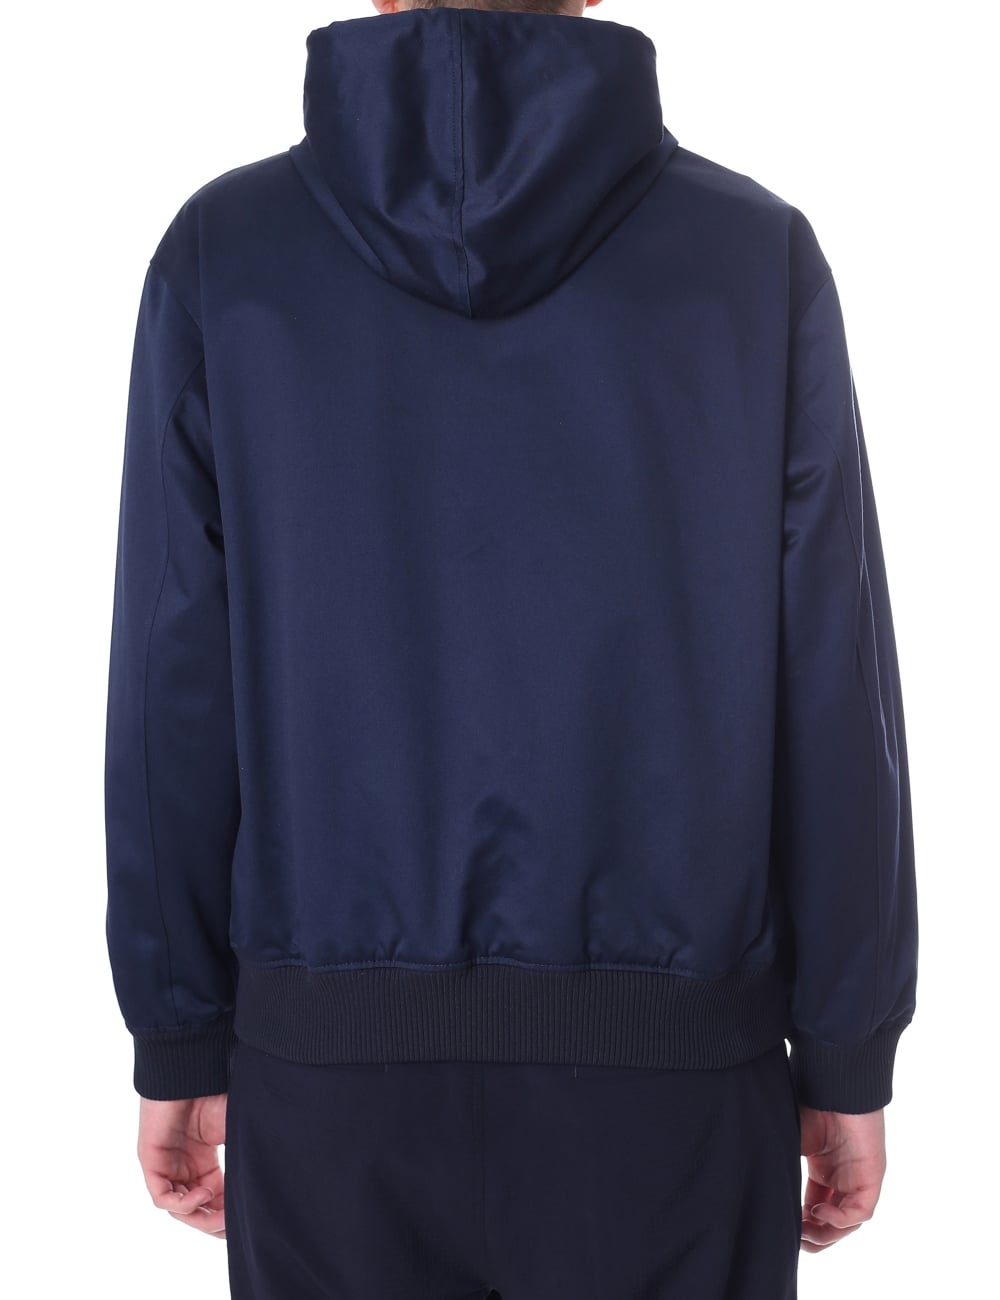 0102ed6edbe Kenzo Men s Hooded Blouson Jacket Navy Blue